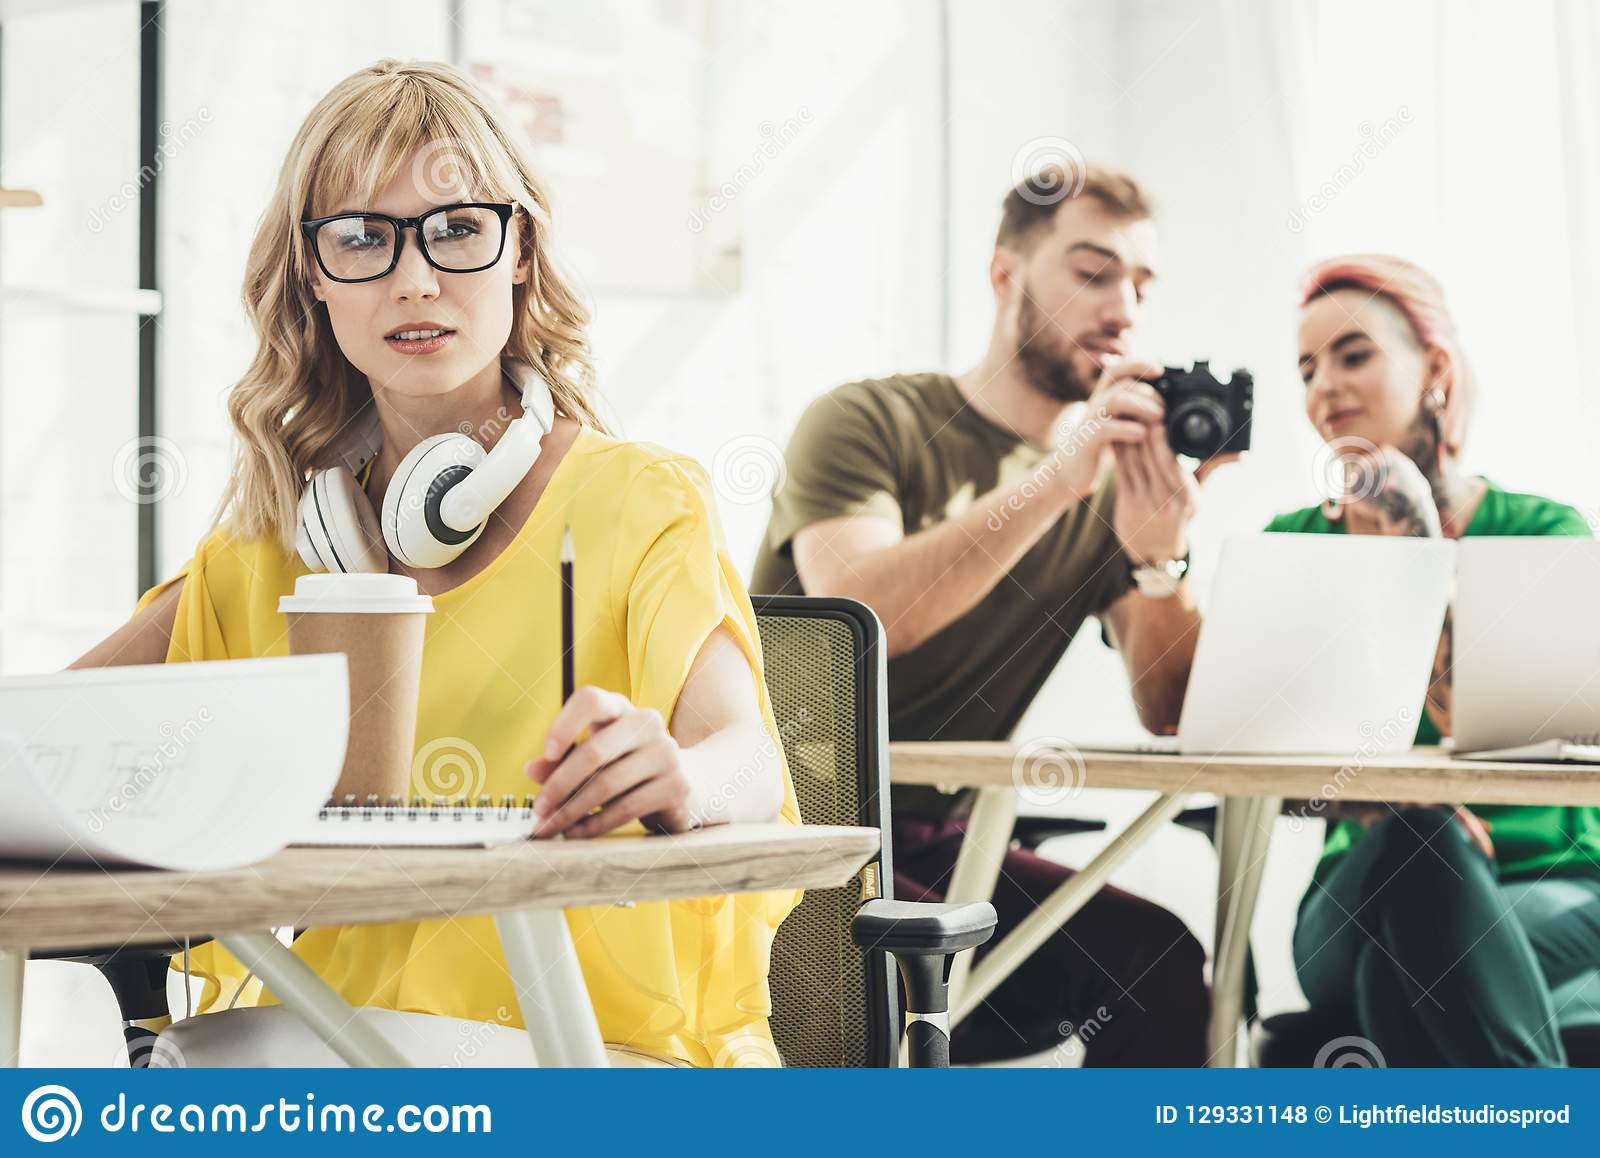 Selective focus of young blogger with headphones looking at camera and colleagues working behind in office royalty free stock photos